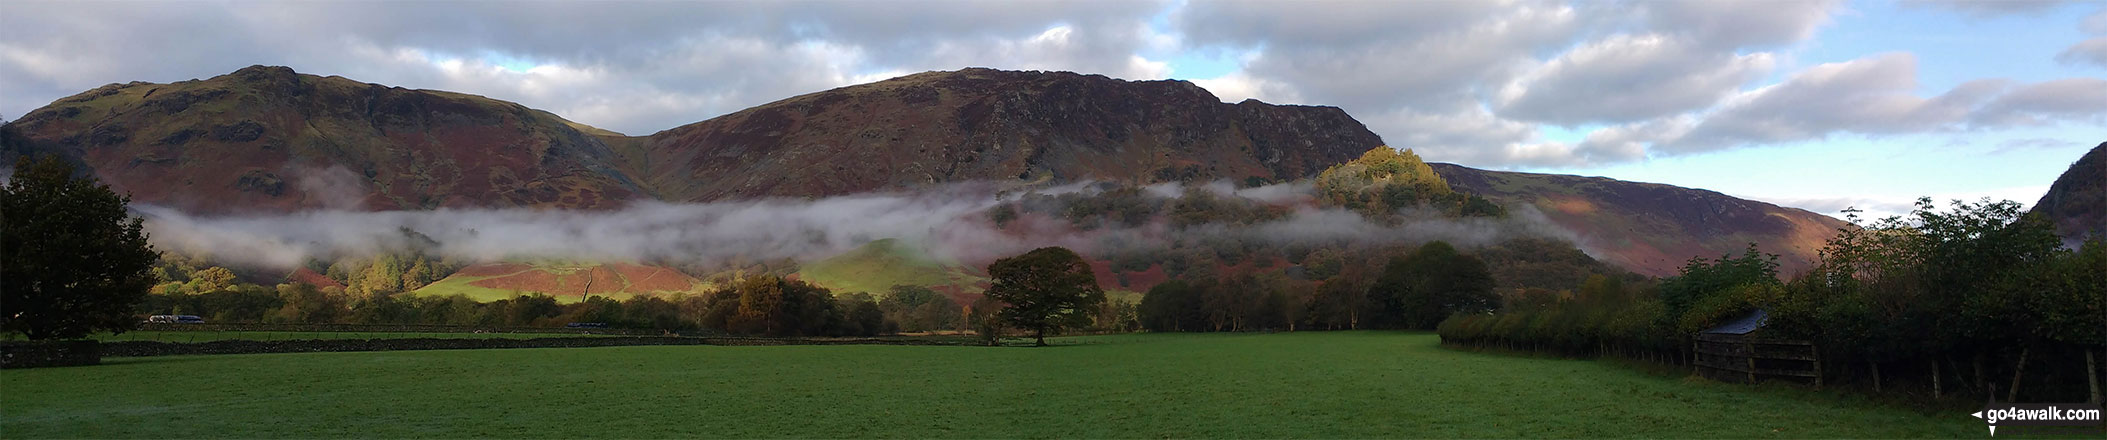 Walk c369 High Raise, Ullscarf and Grange Fell from Rosthwaite - Early morning valley mist below Dale Head (Newlands) and High Spy, Maiden Moor & Cat Bells (Catbells) with the summit of Castle Crag (front right) lit by a ray of sunshine from Rosthwaite